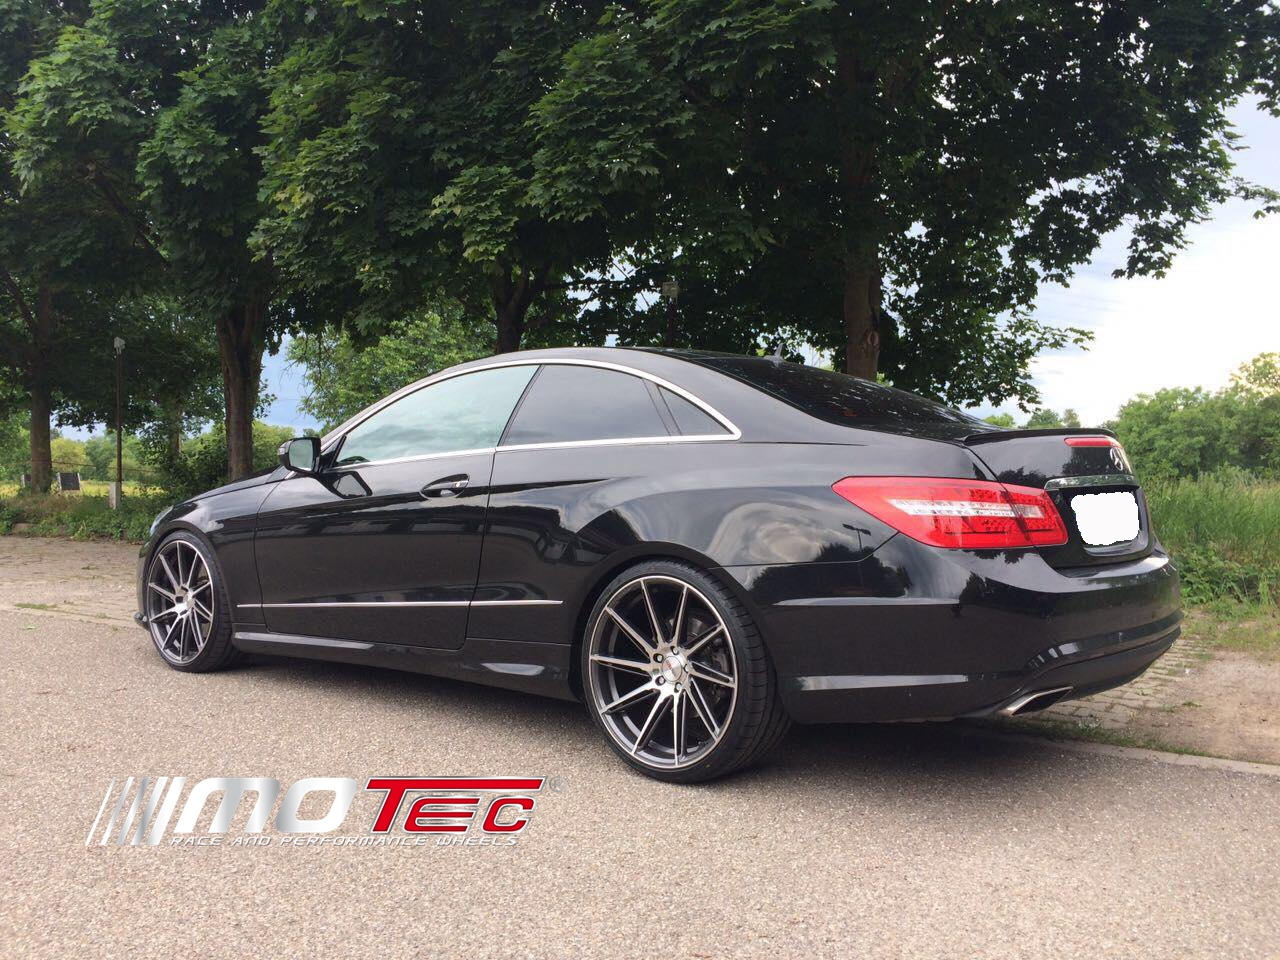 19 Inch Summer Tire For Mercedes Benz C E Cls Class W204